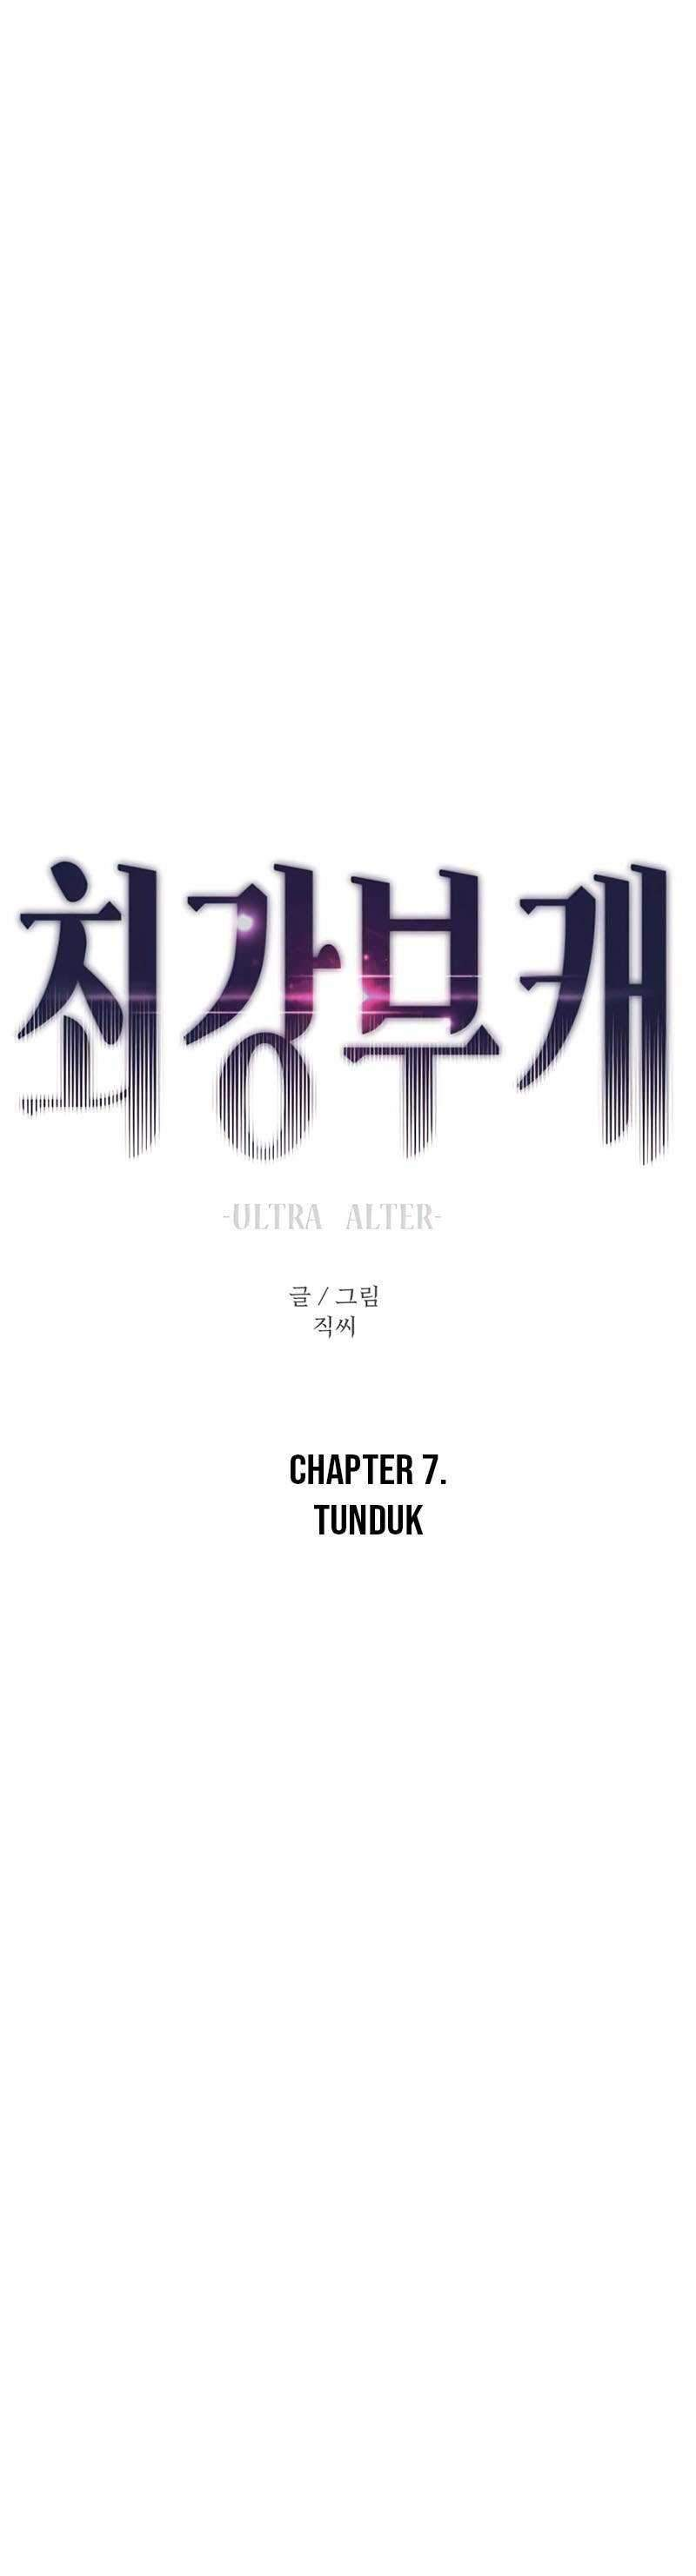 Ultra Alter Chapter 7